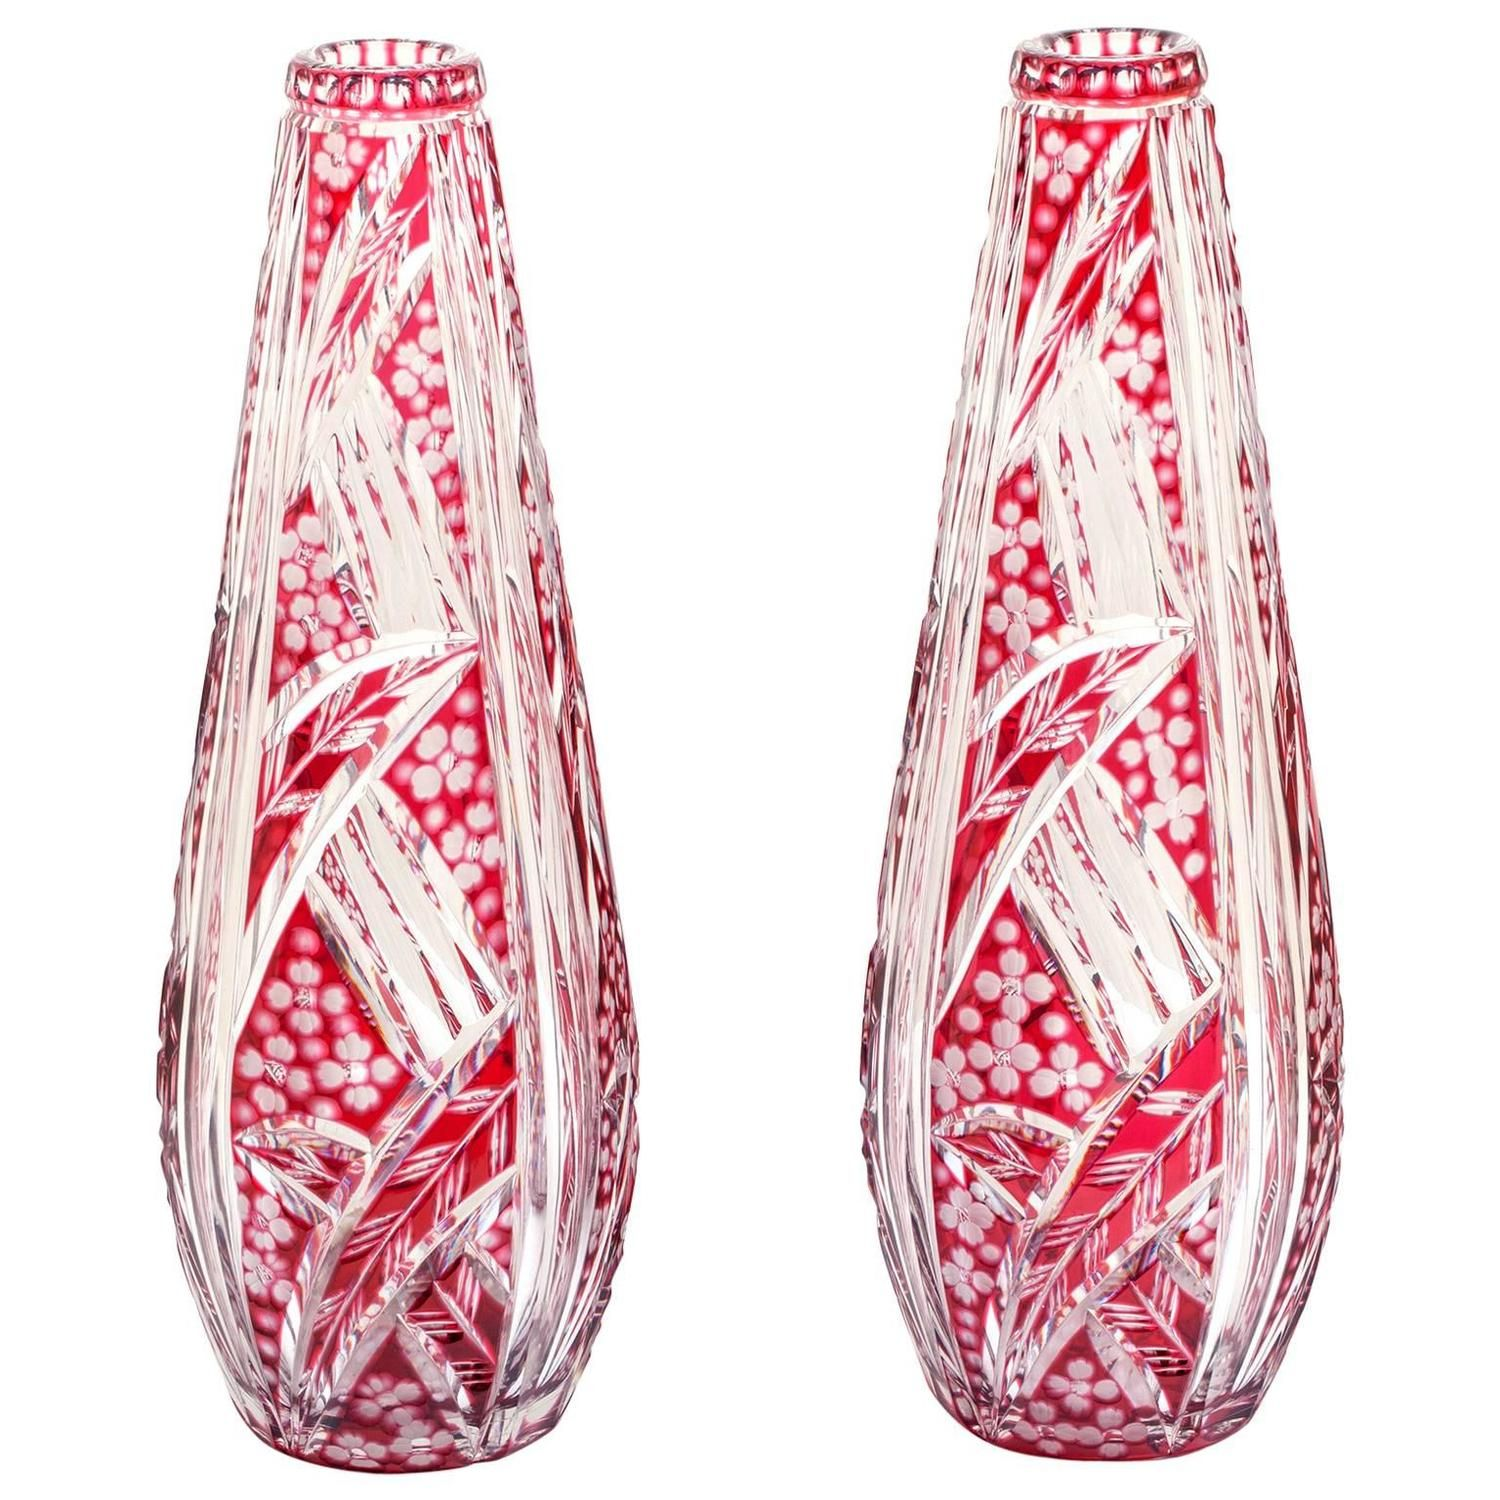 Stunning Pair of Art Deco Saint Louis Vases